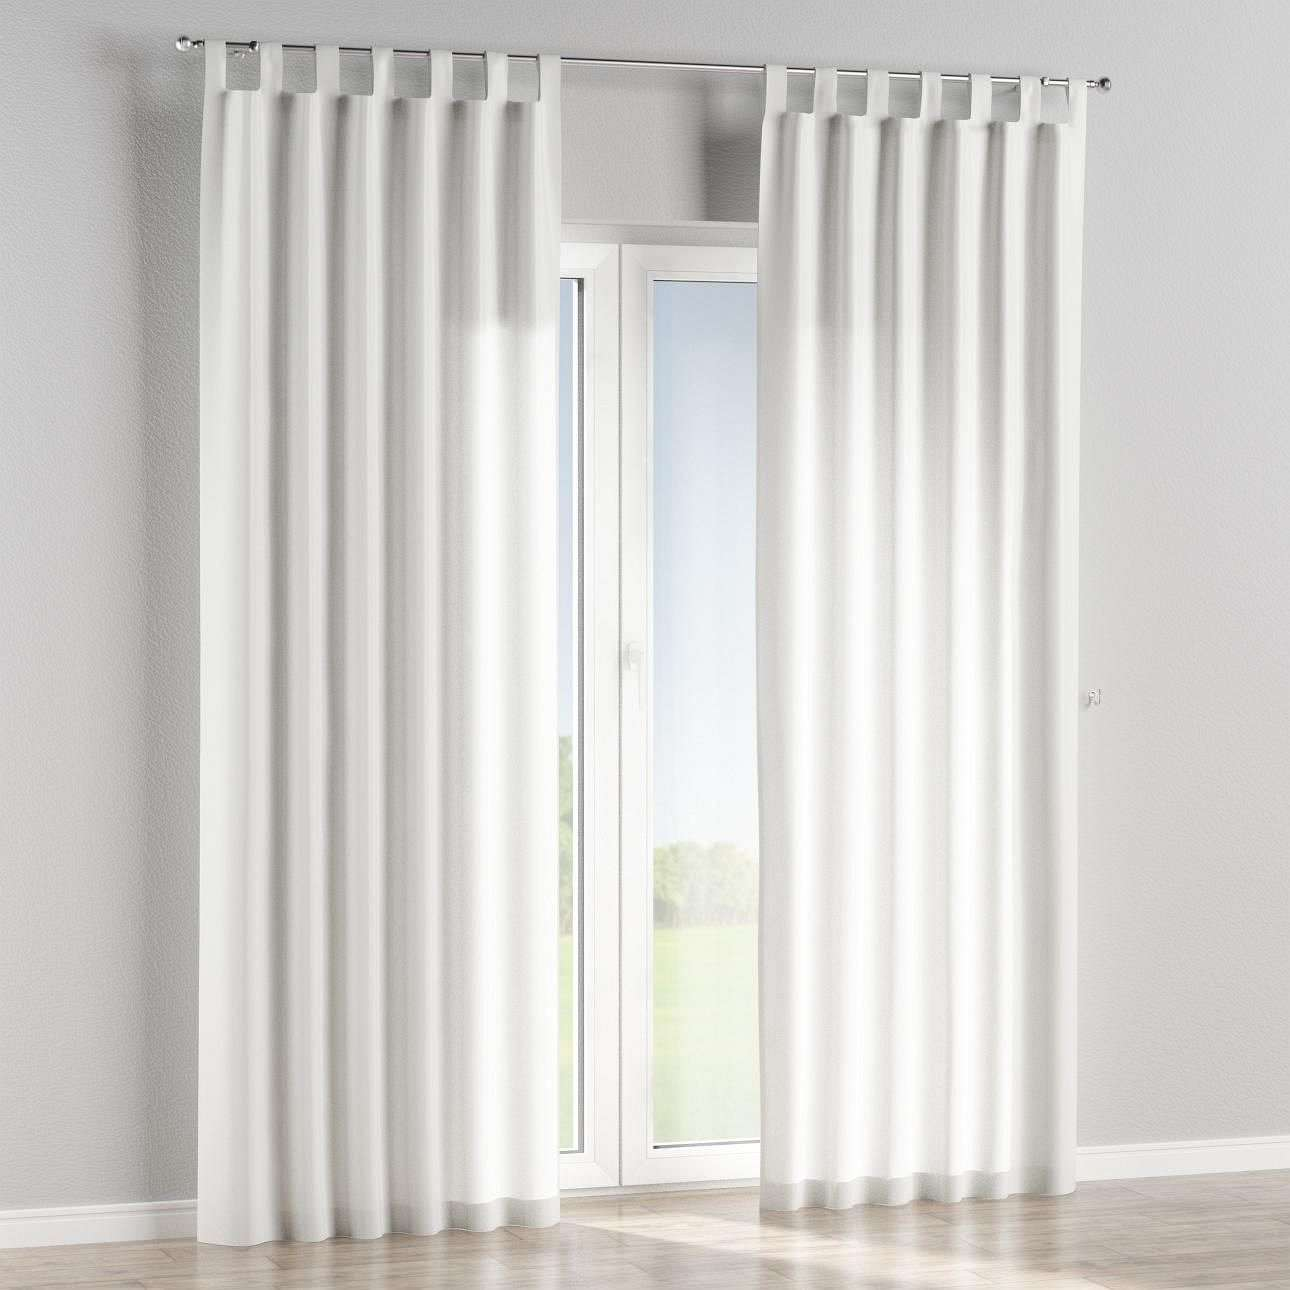 Tab top lined curtains in collection Mirella, fabric: 140-40